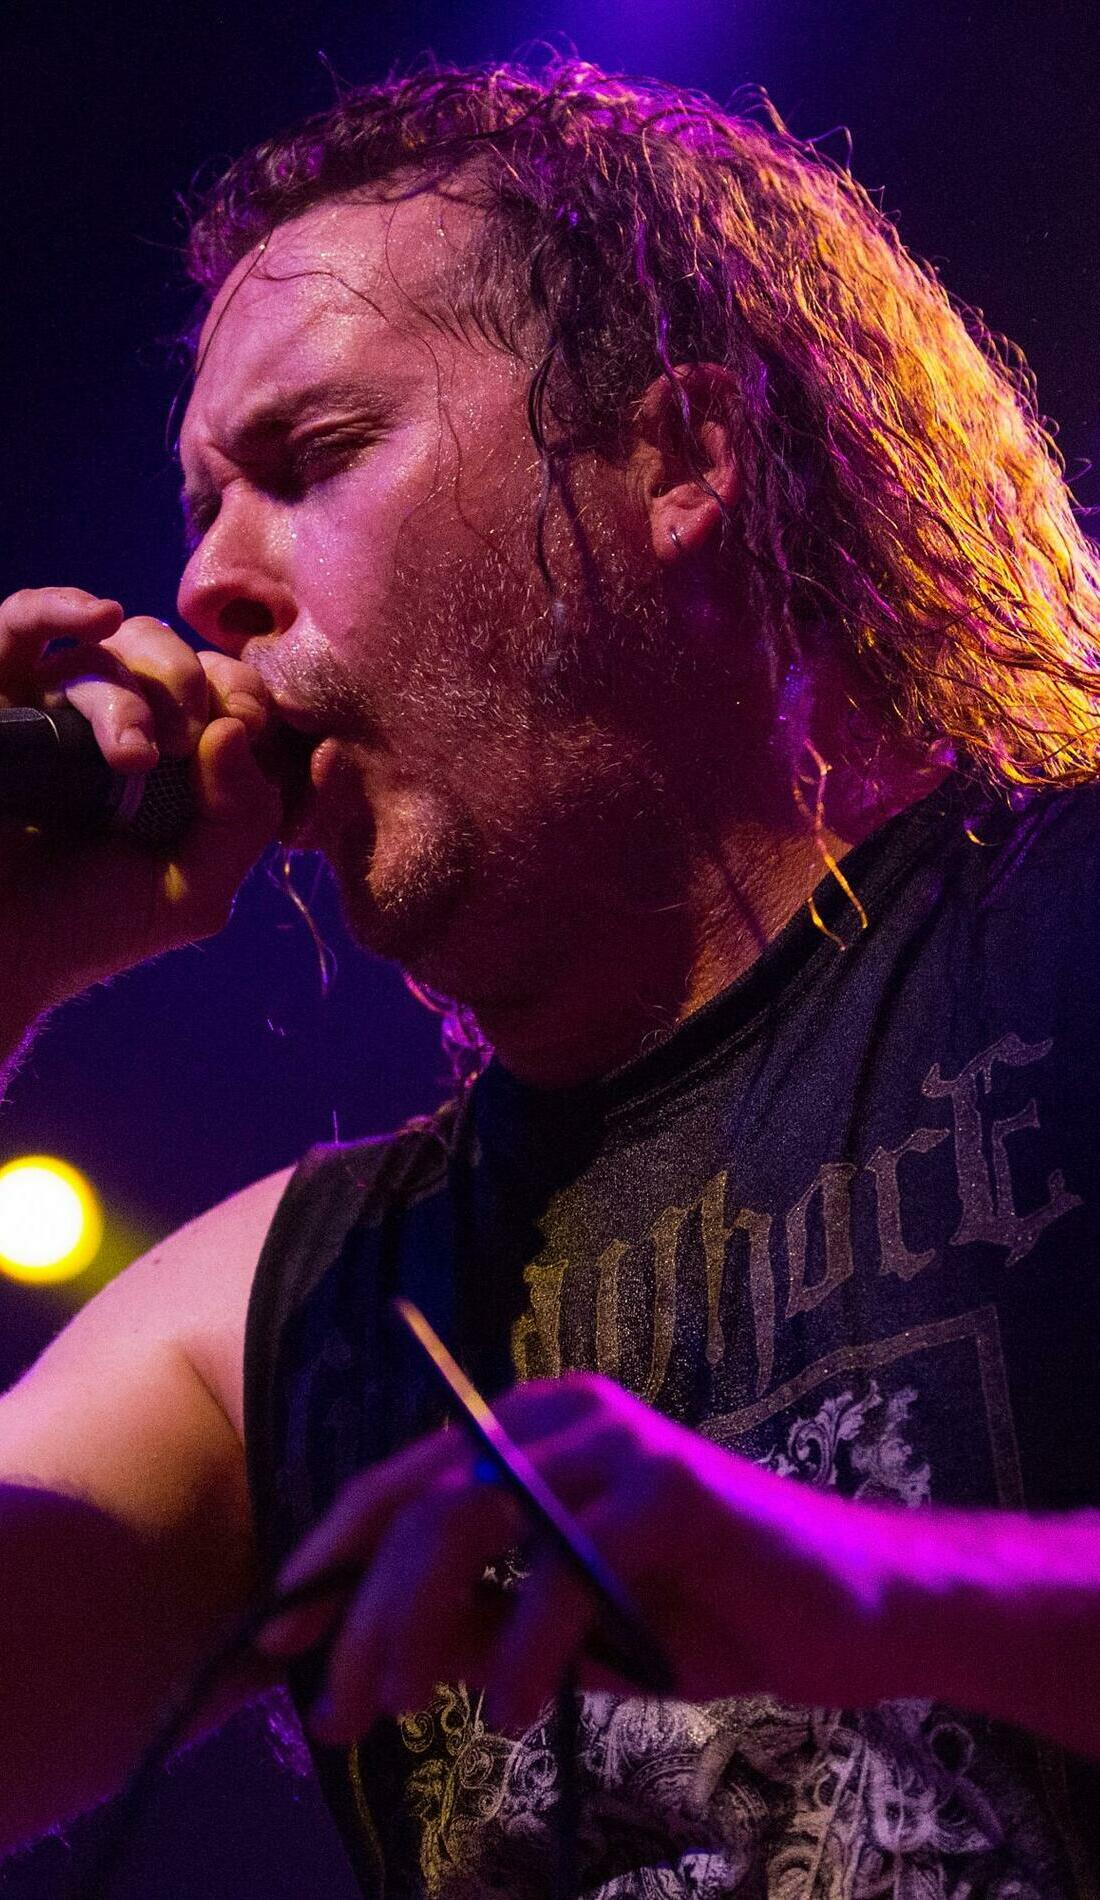 A Cattle Decapitation live event